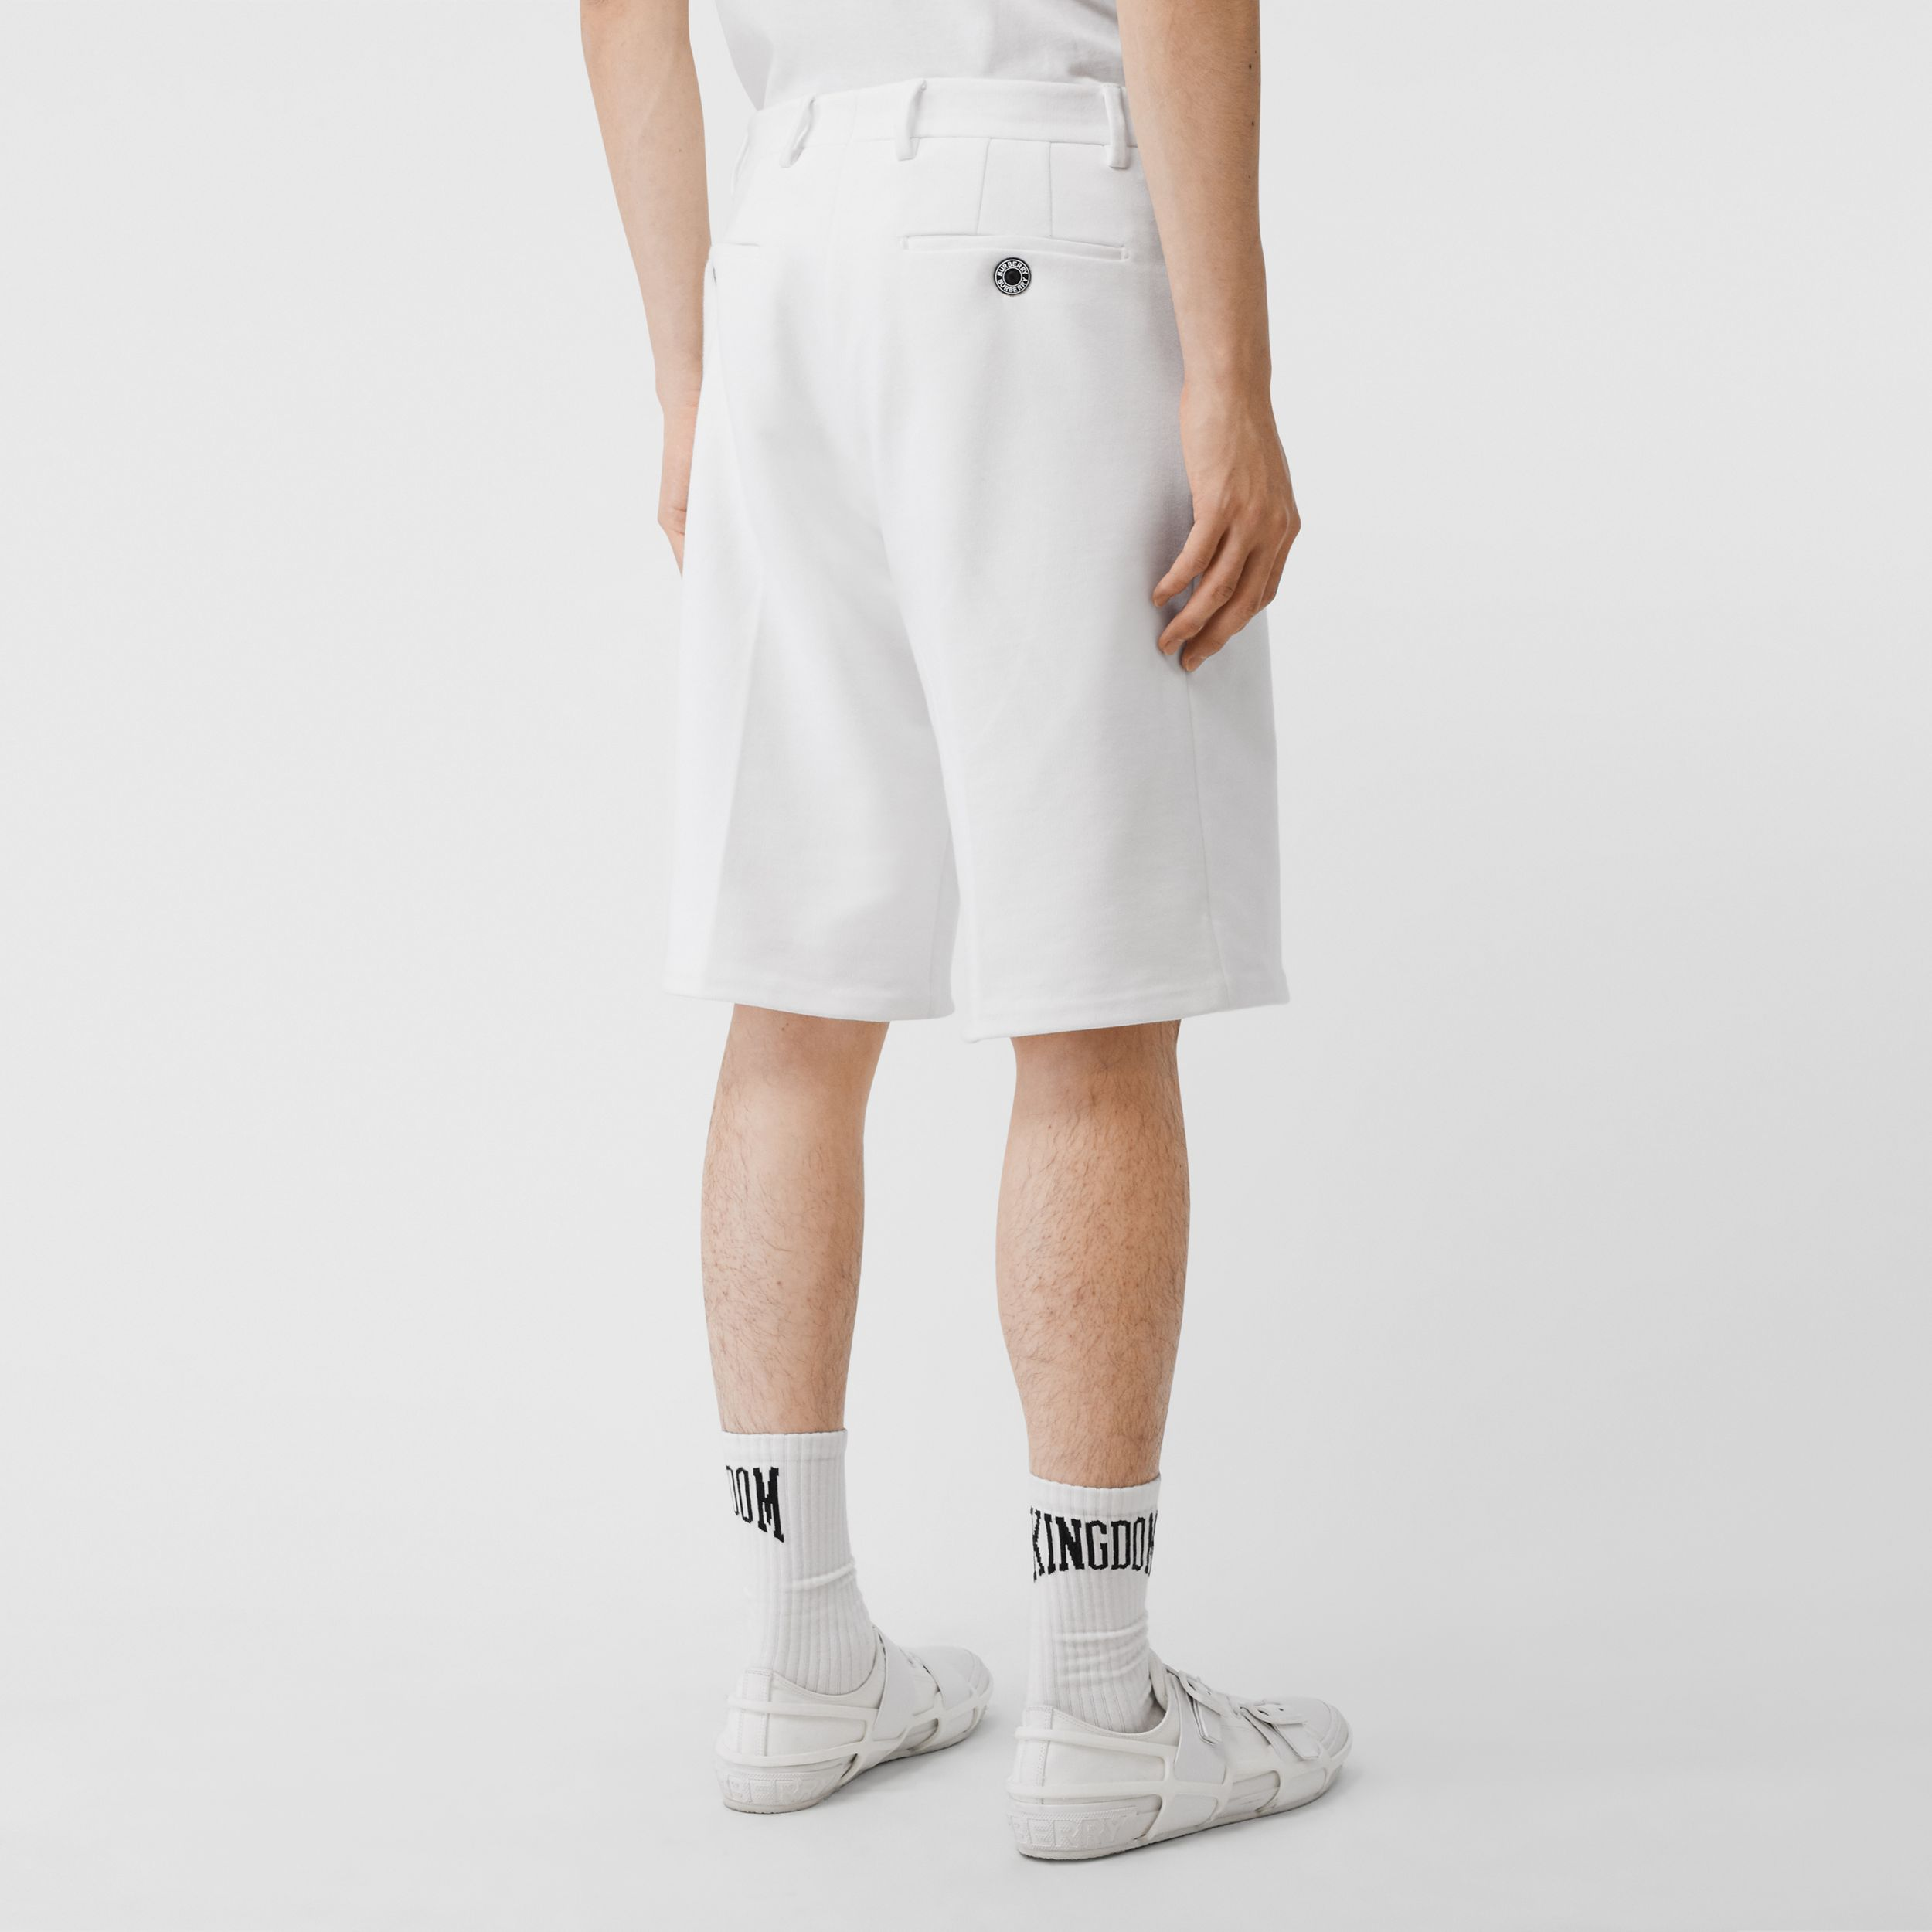 Globe Graphic Cotton Tailored Shorts in Optic White - Men | Burberry - 3